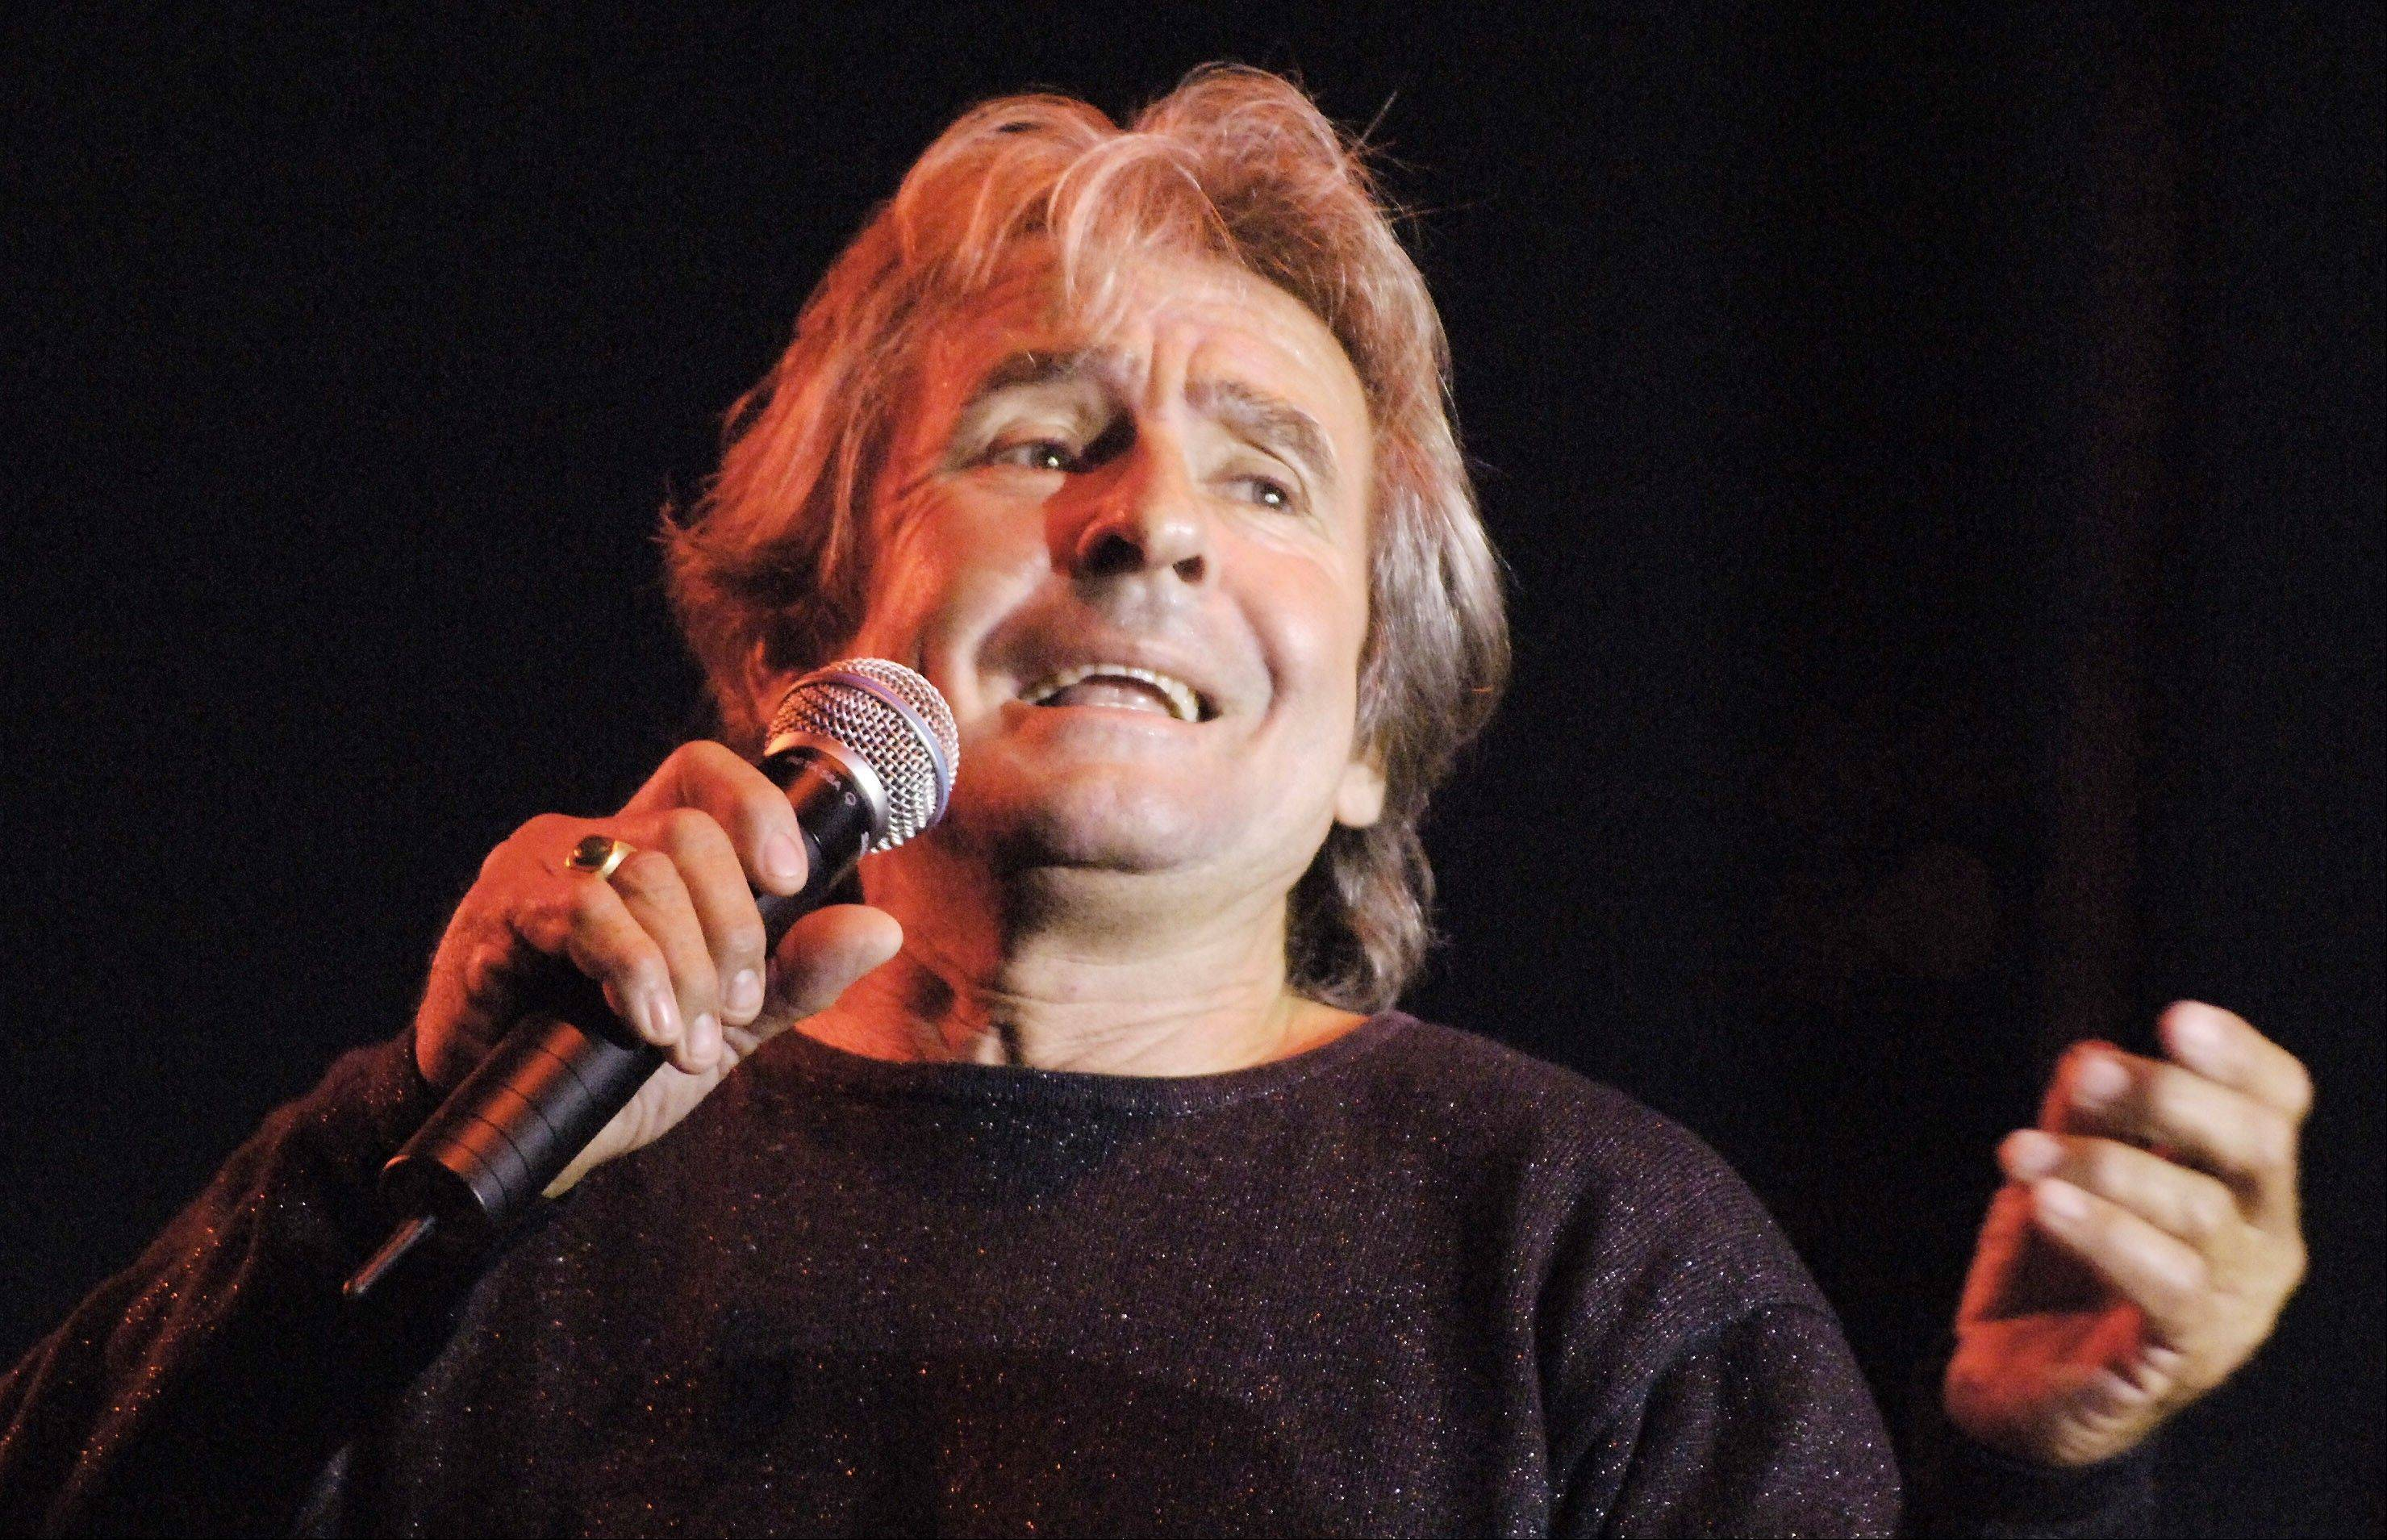 British entertainer Davy Jones, an actor turned singer who helped propel the TV rock band The Monkees to the top of the pop charts, died on Feb. 29. He was 66.